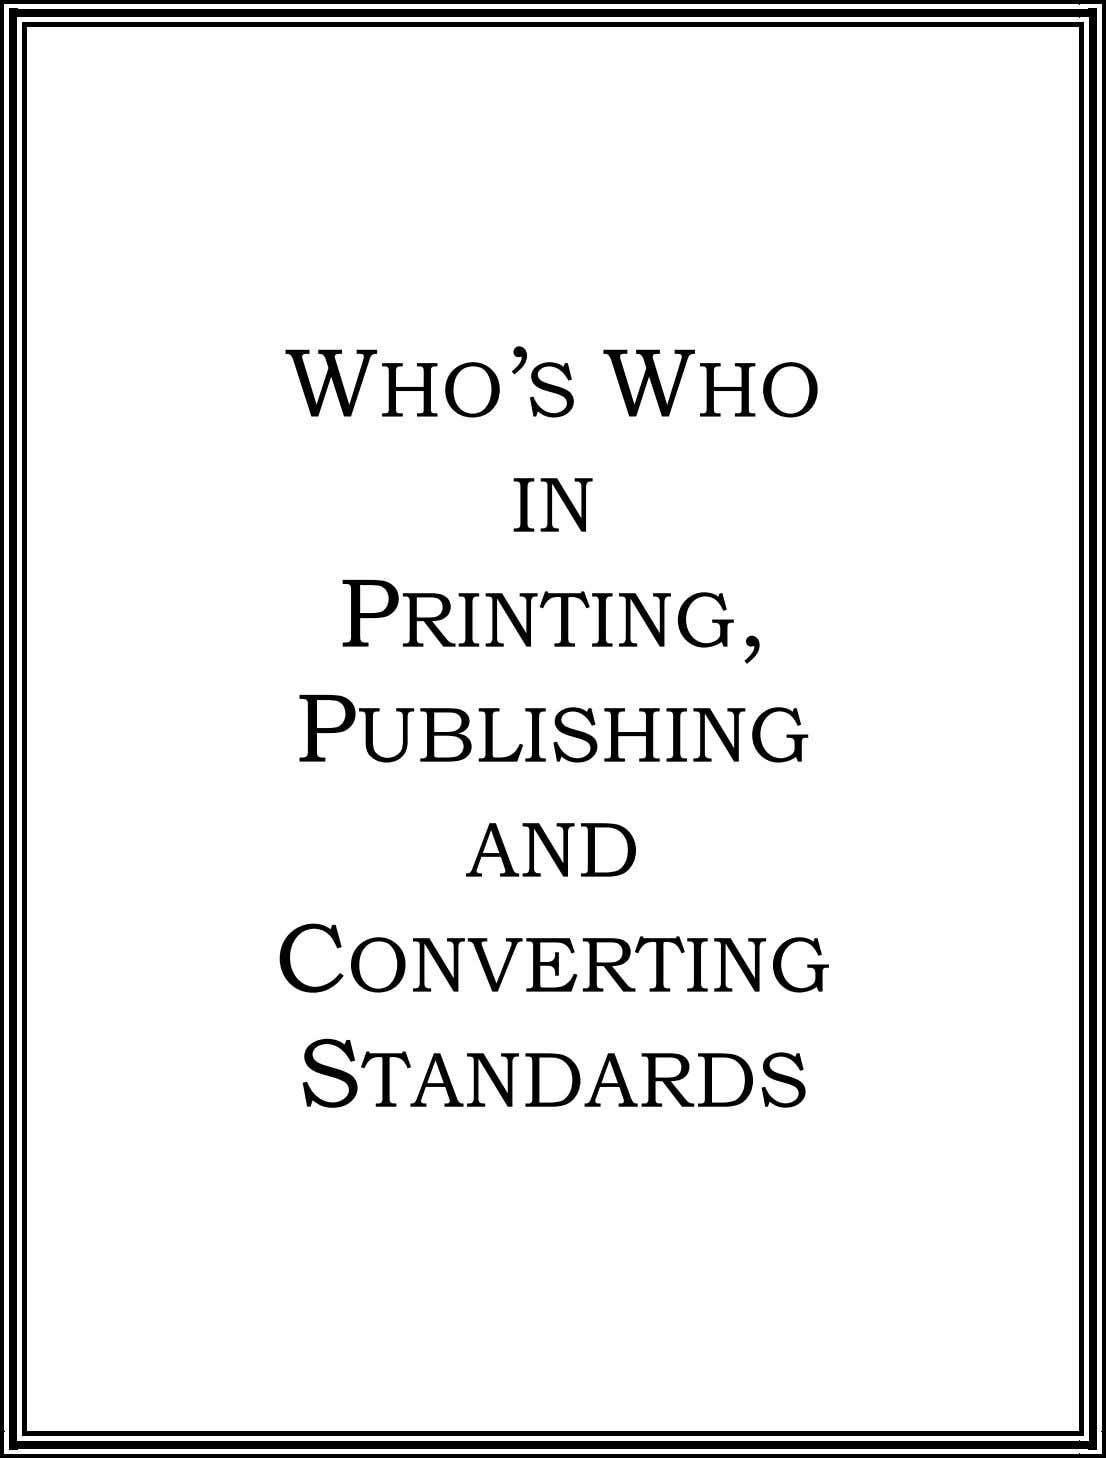 WHO'S WHO IN PRINTING, PUBLISHING AND CONVERTING STANDARDS